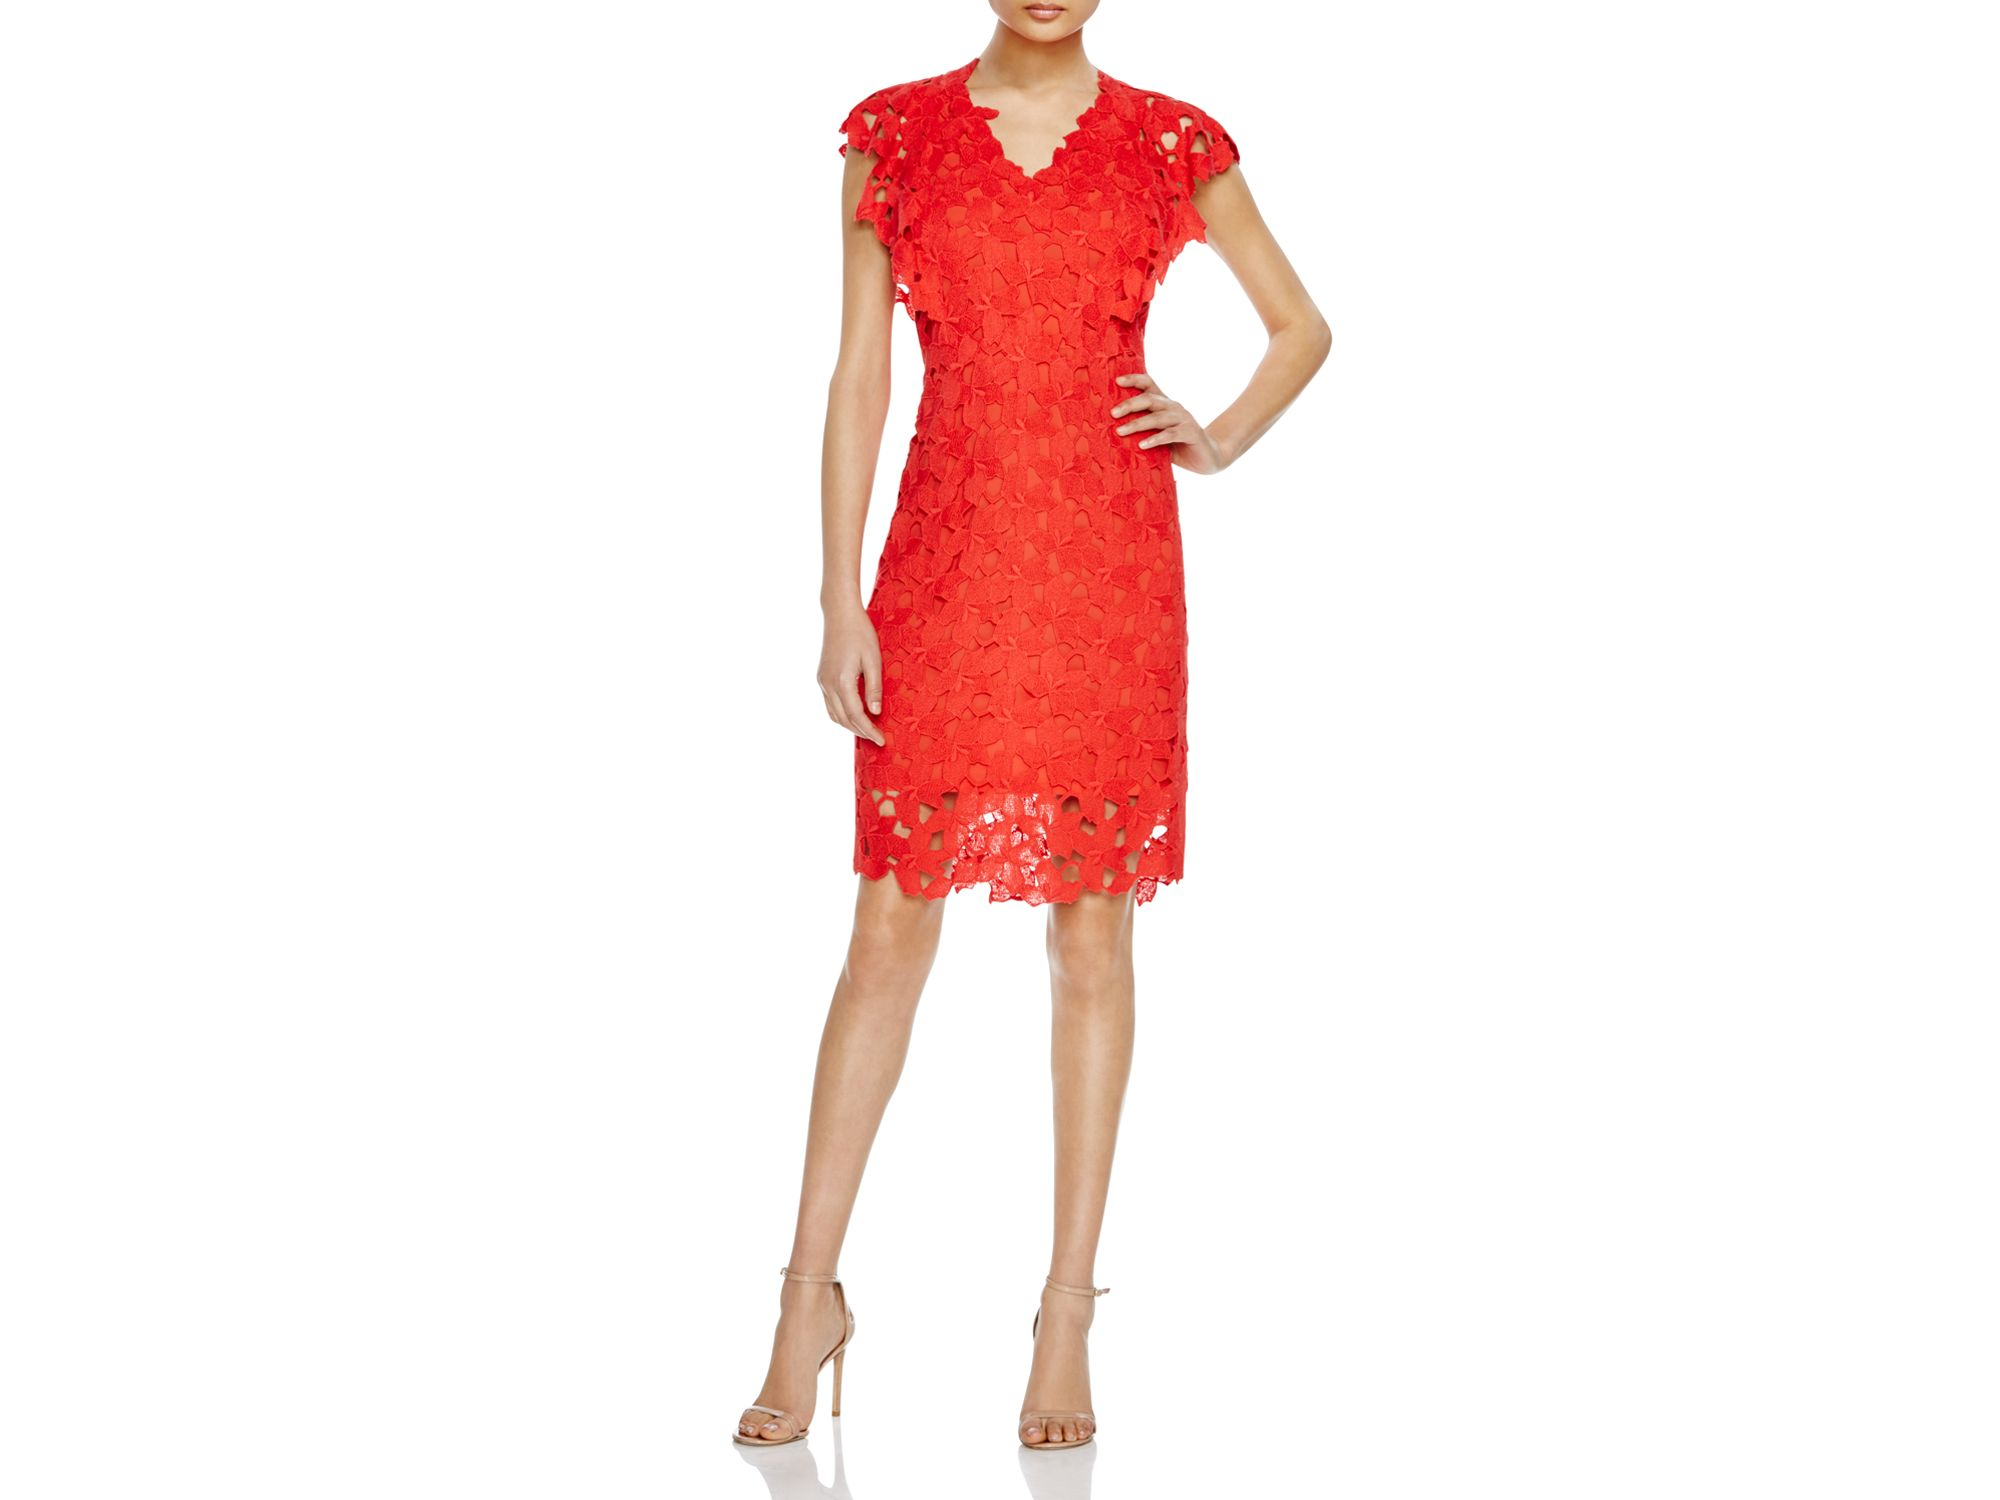 7e22a888f53 Elie Tahari Morgen Floral Lace Dress in Red - Lyst